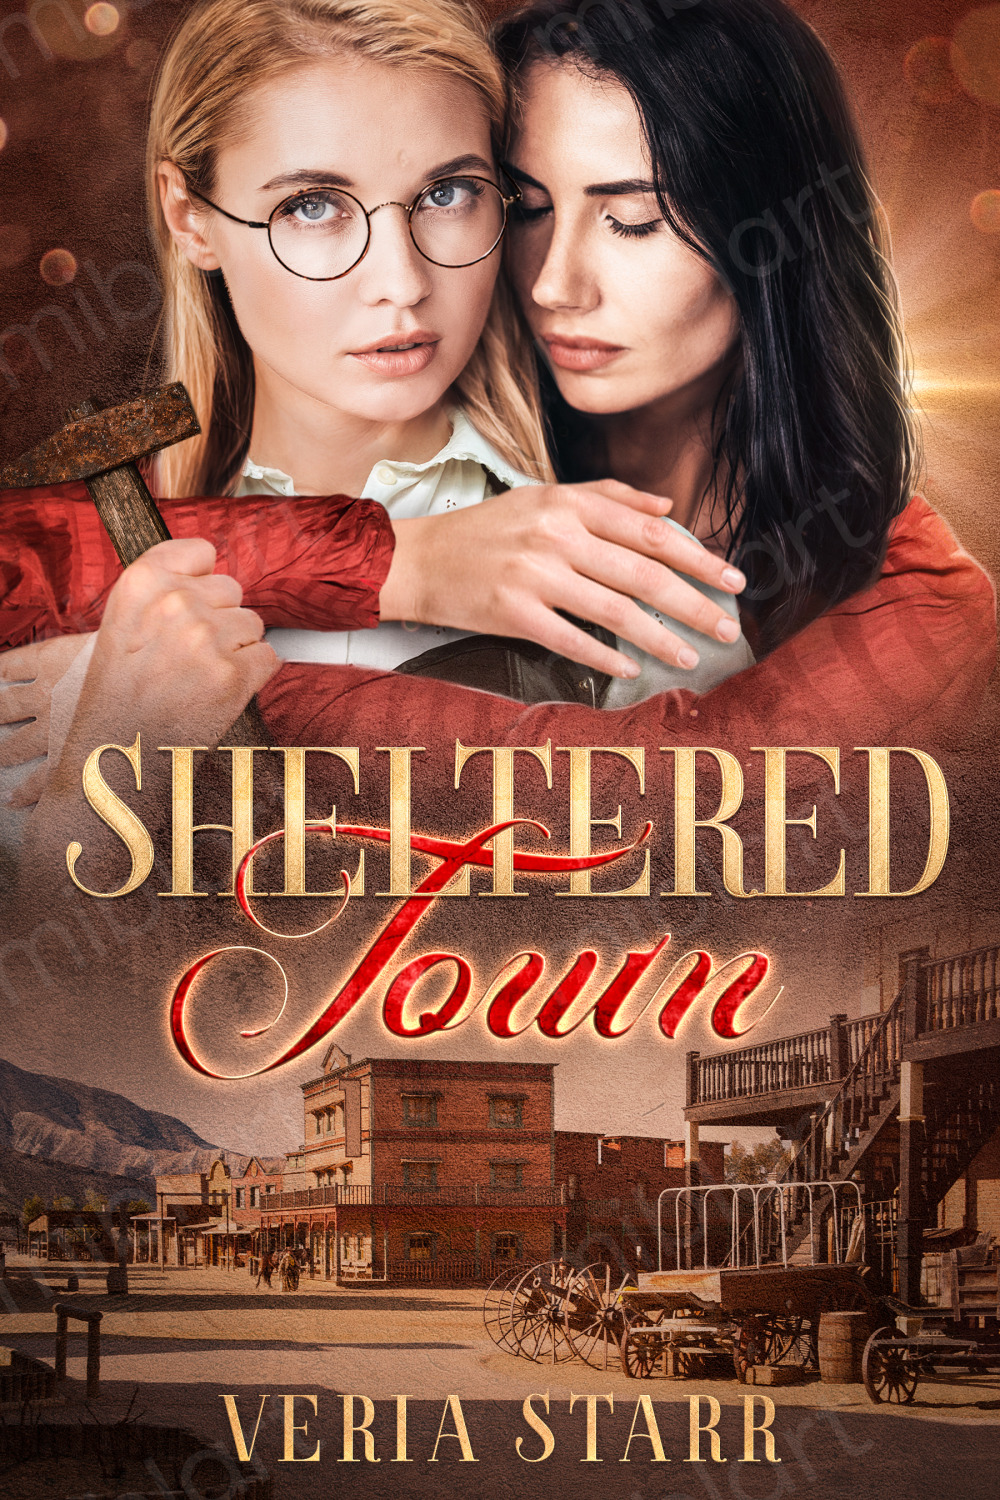 A book cover with a brunette woman holding a blond woman whose chin is tilted downward.